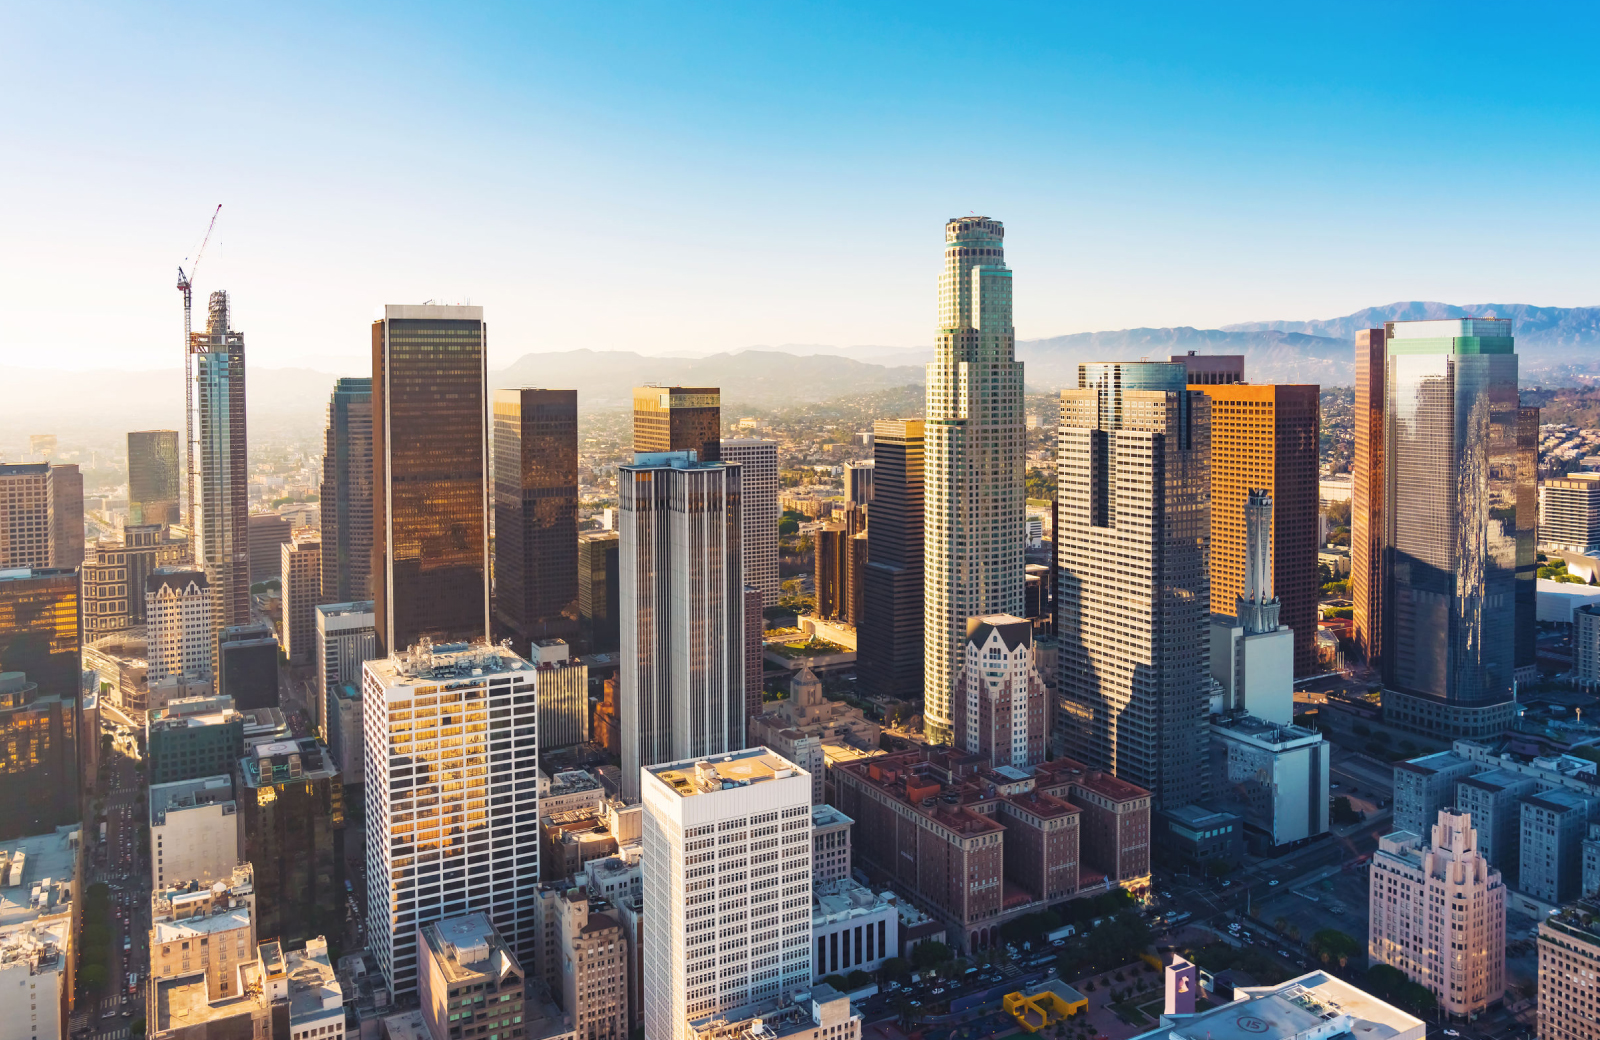 Marvel at The Best Views Of DTLA